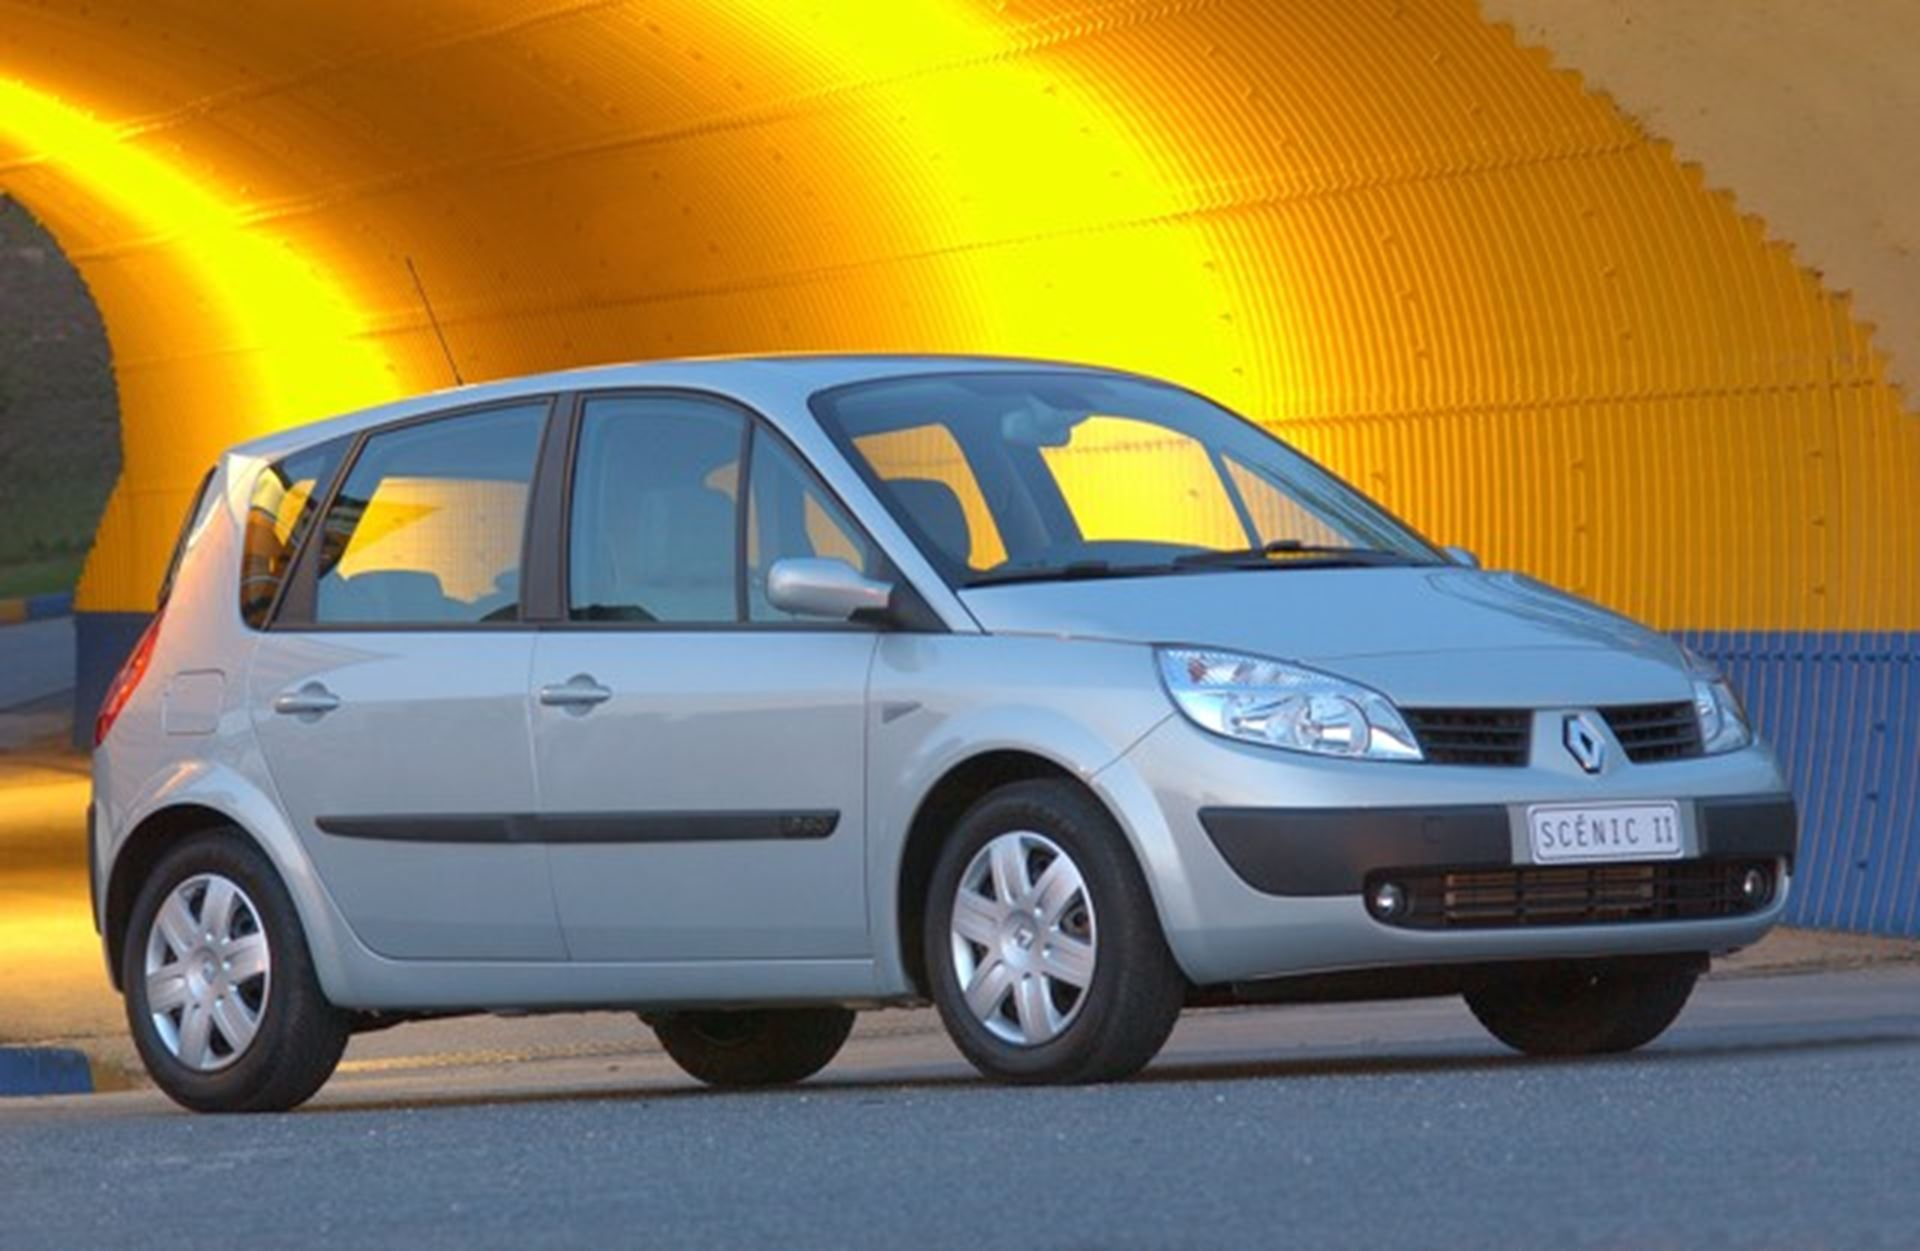 Renault Scenic South Africa Car Show2